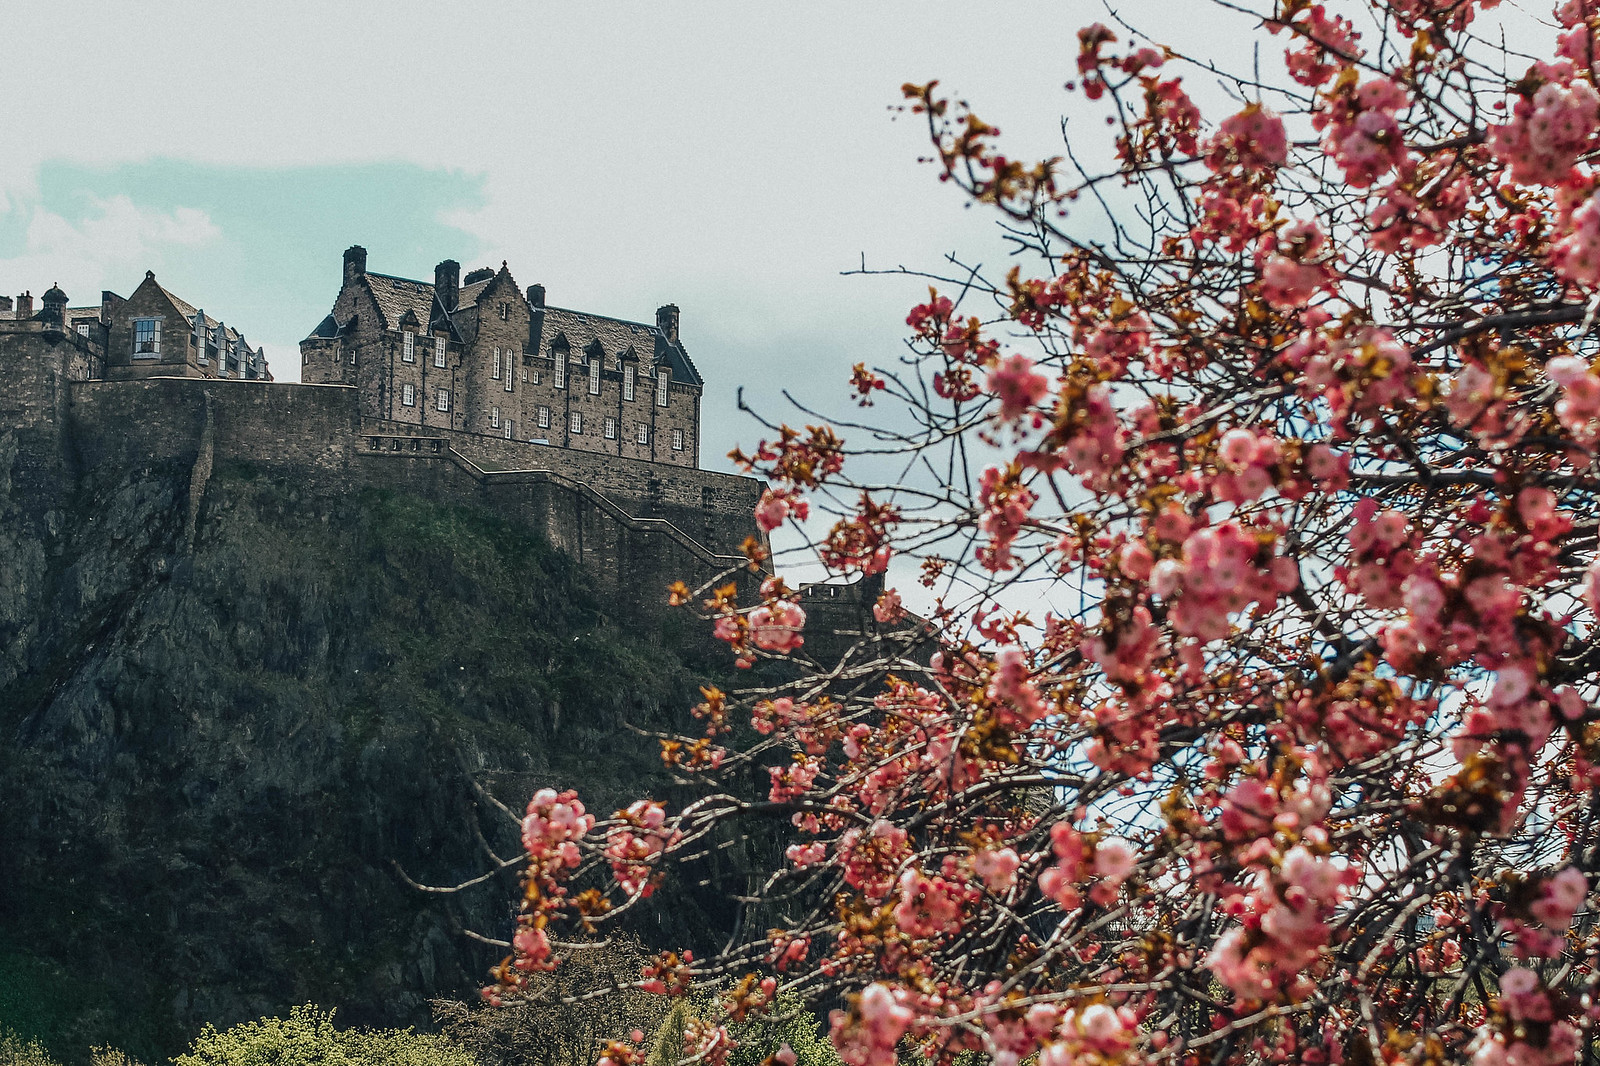 Blossom spring Edinburgh The Meadows Princes Street Gardens Edinburgh Castle